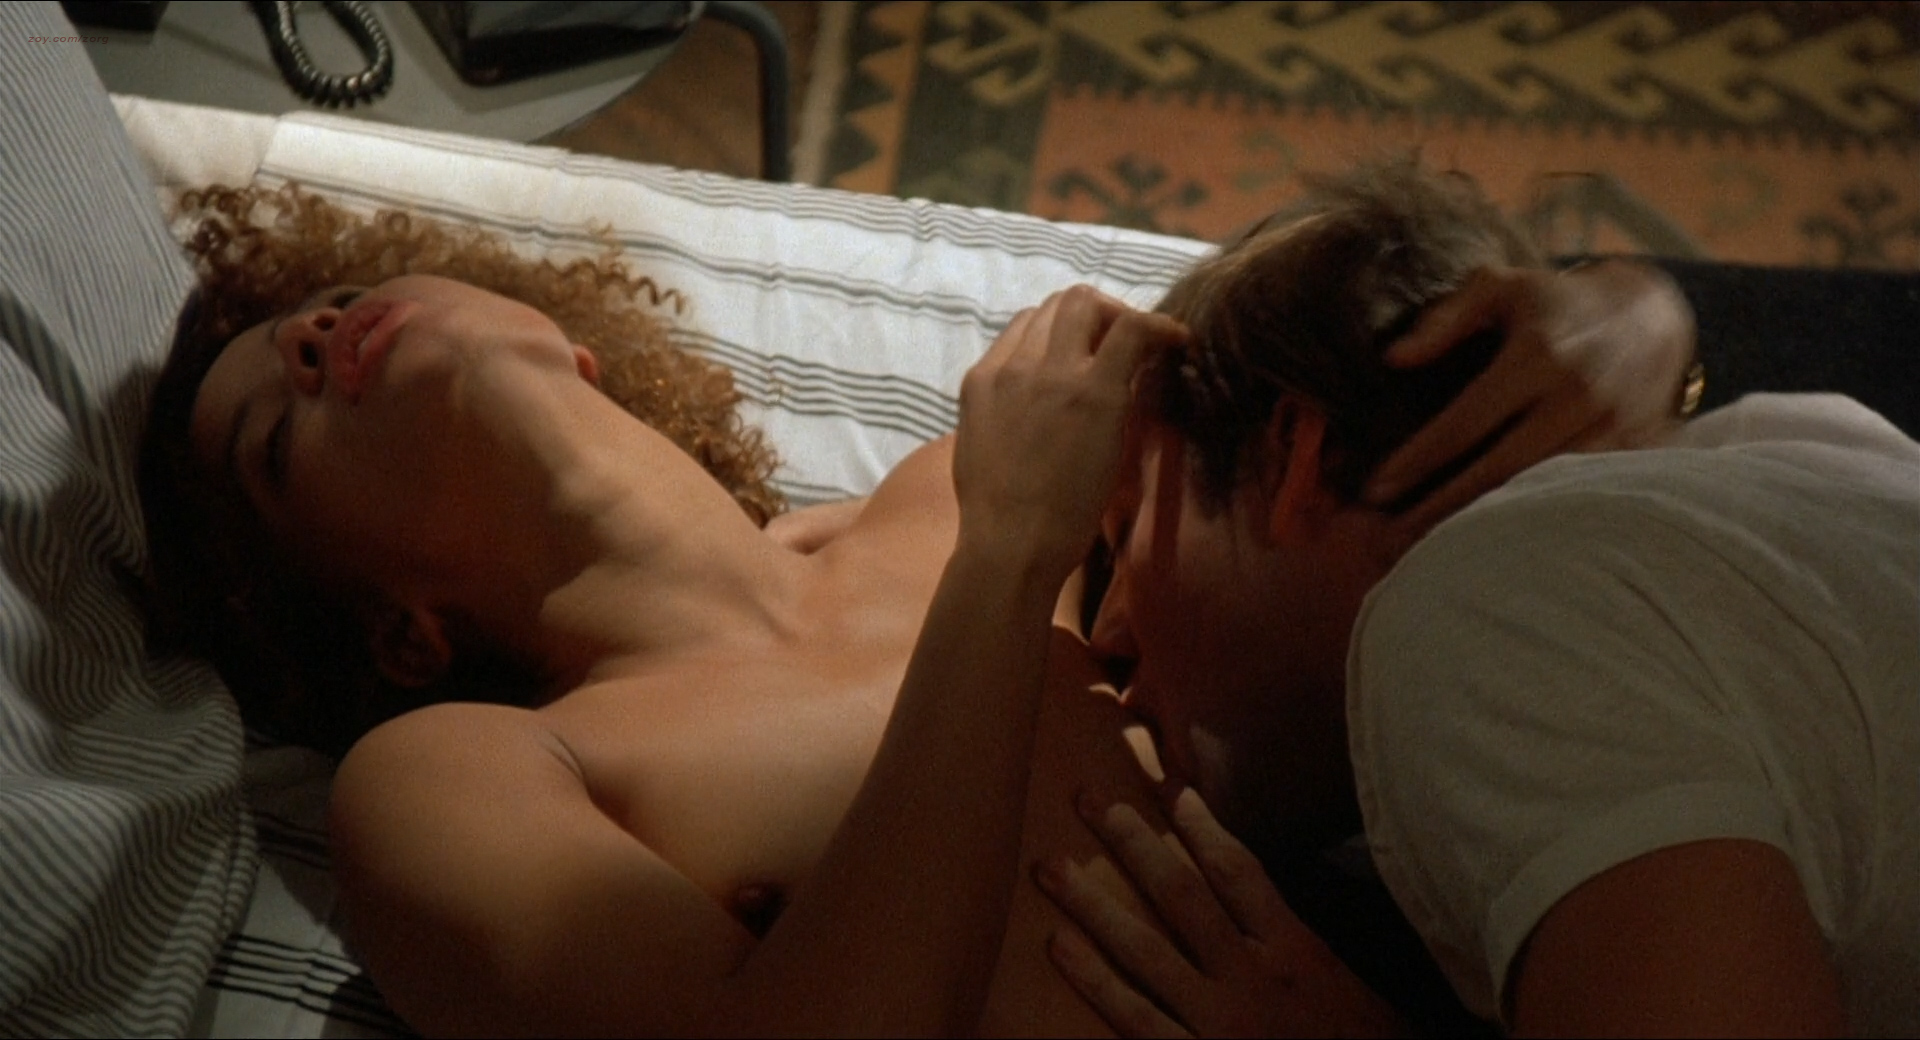 Jennifer Beals nude but covered and Kasi Lemmons nude topless - Vampire's Kiss (1989) hd1080p BluRay (6)